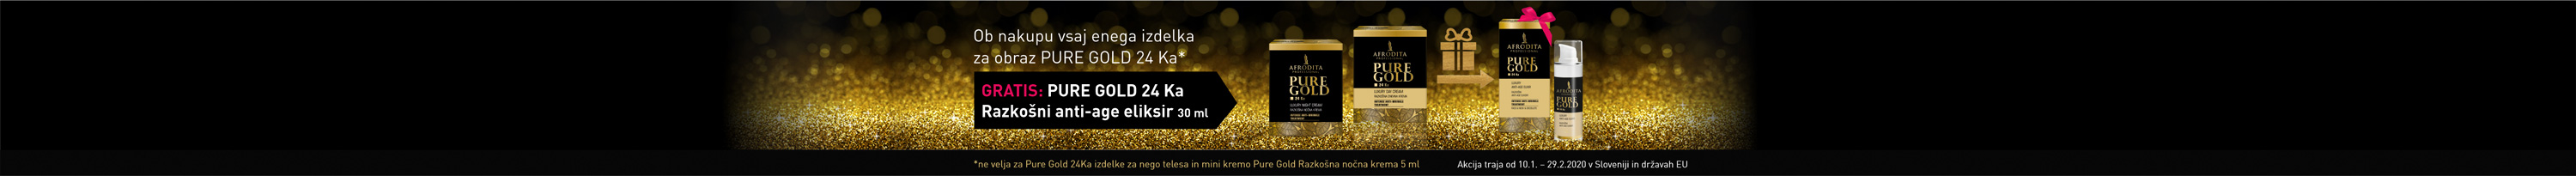 pure-gold-2020